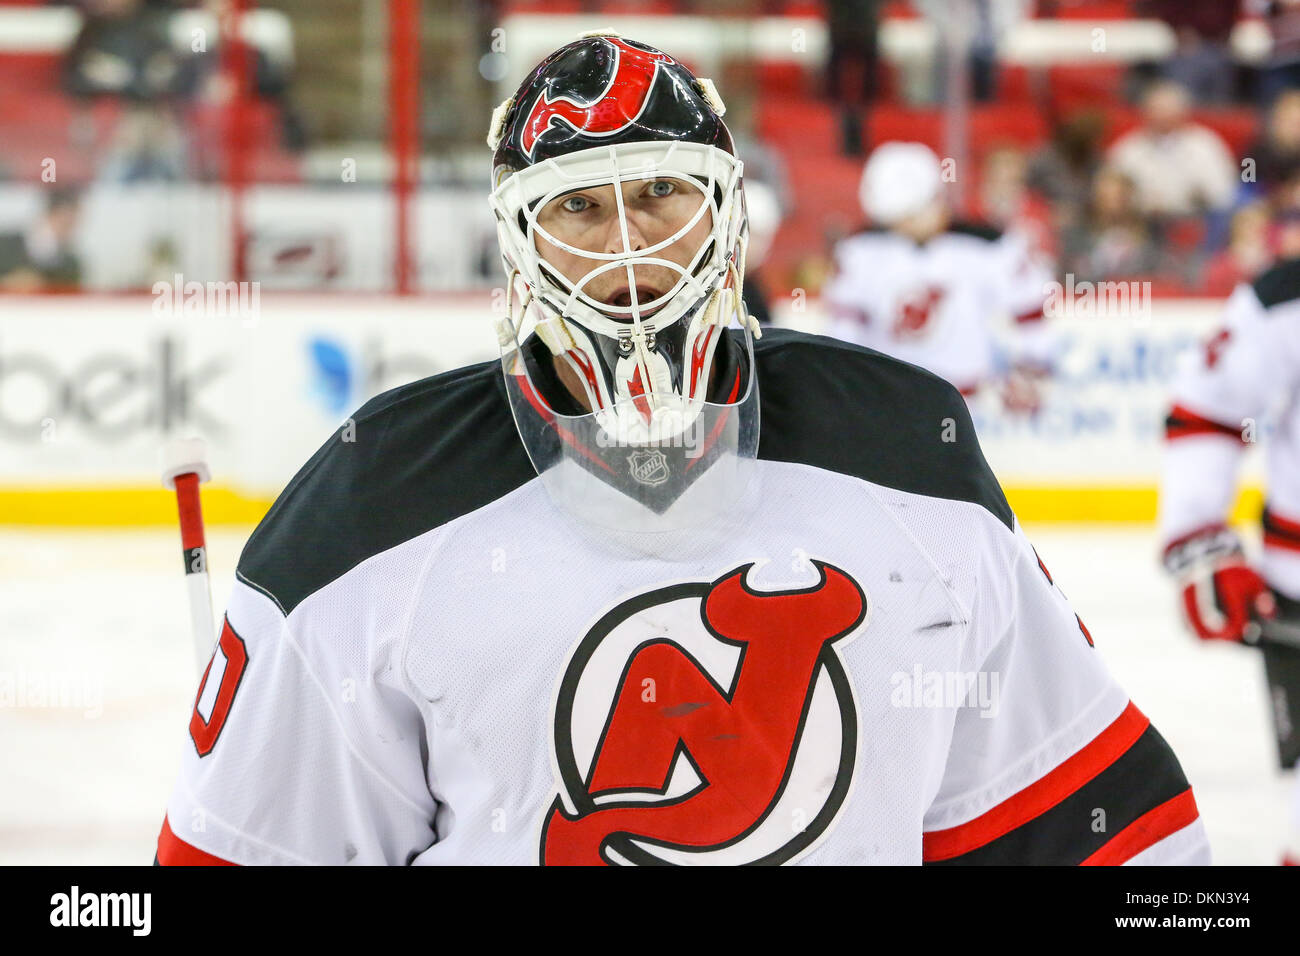 pretty nice a9cb7 ea159 New Jersey Devils goalie Martin Brodeur (30) during the NHL ...